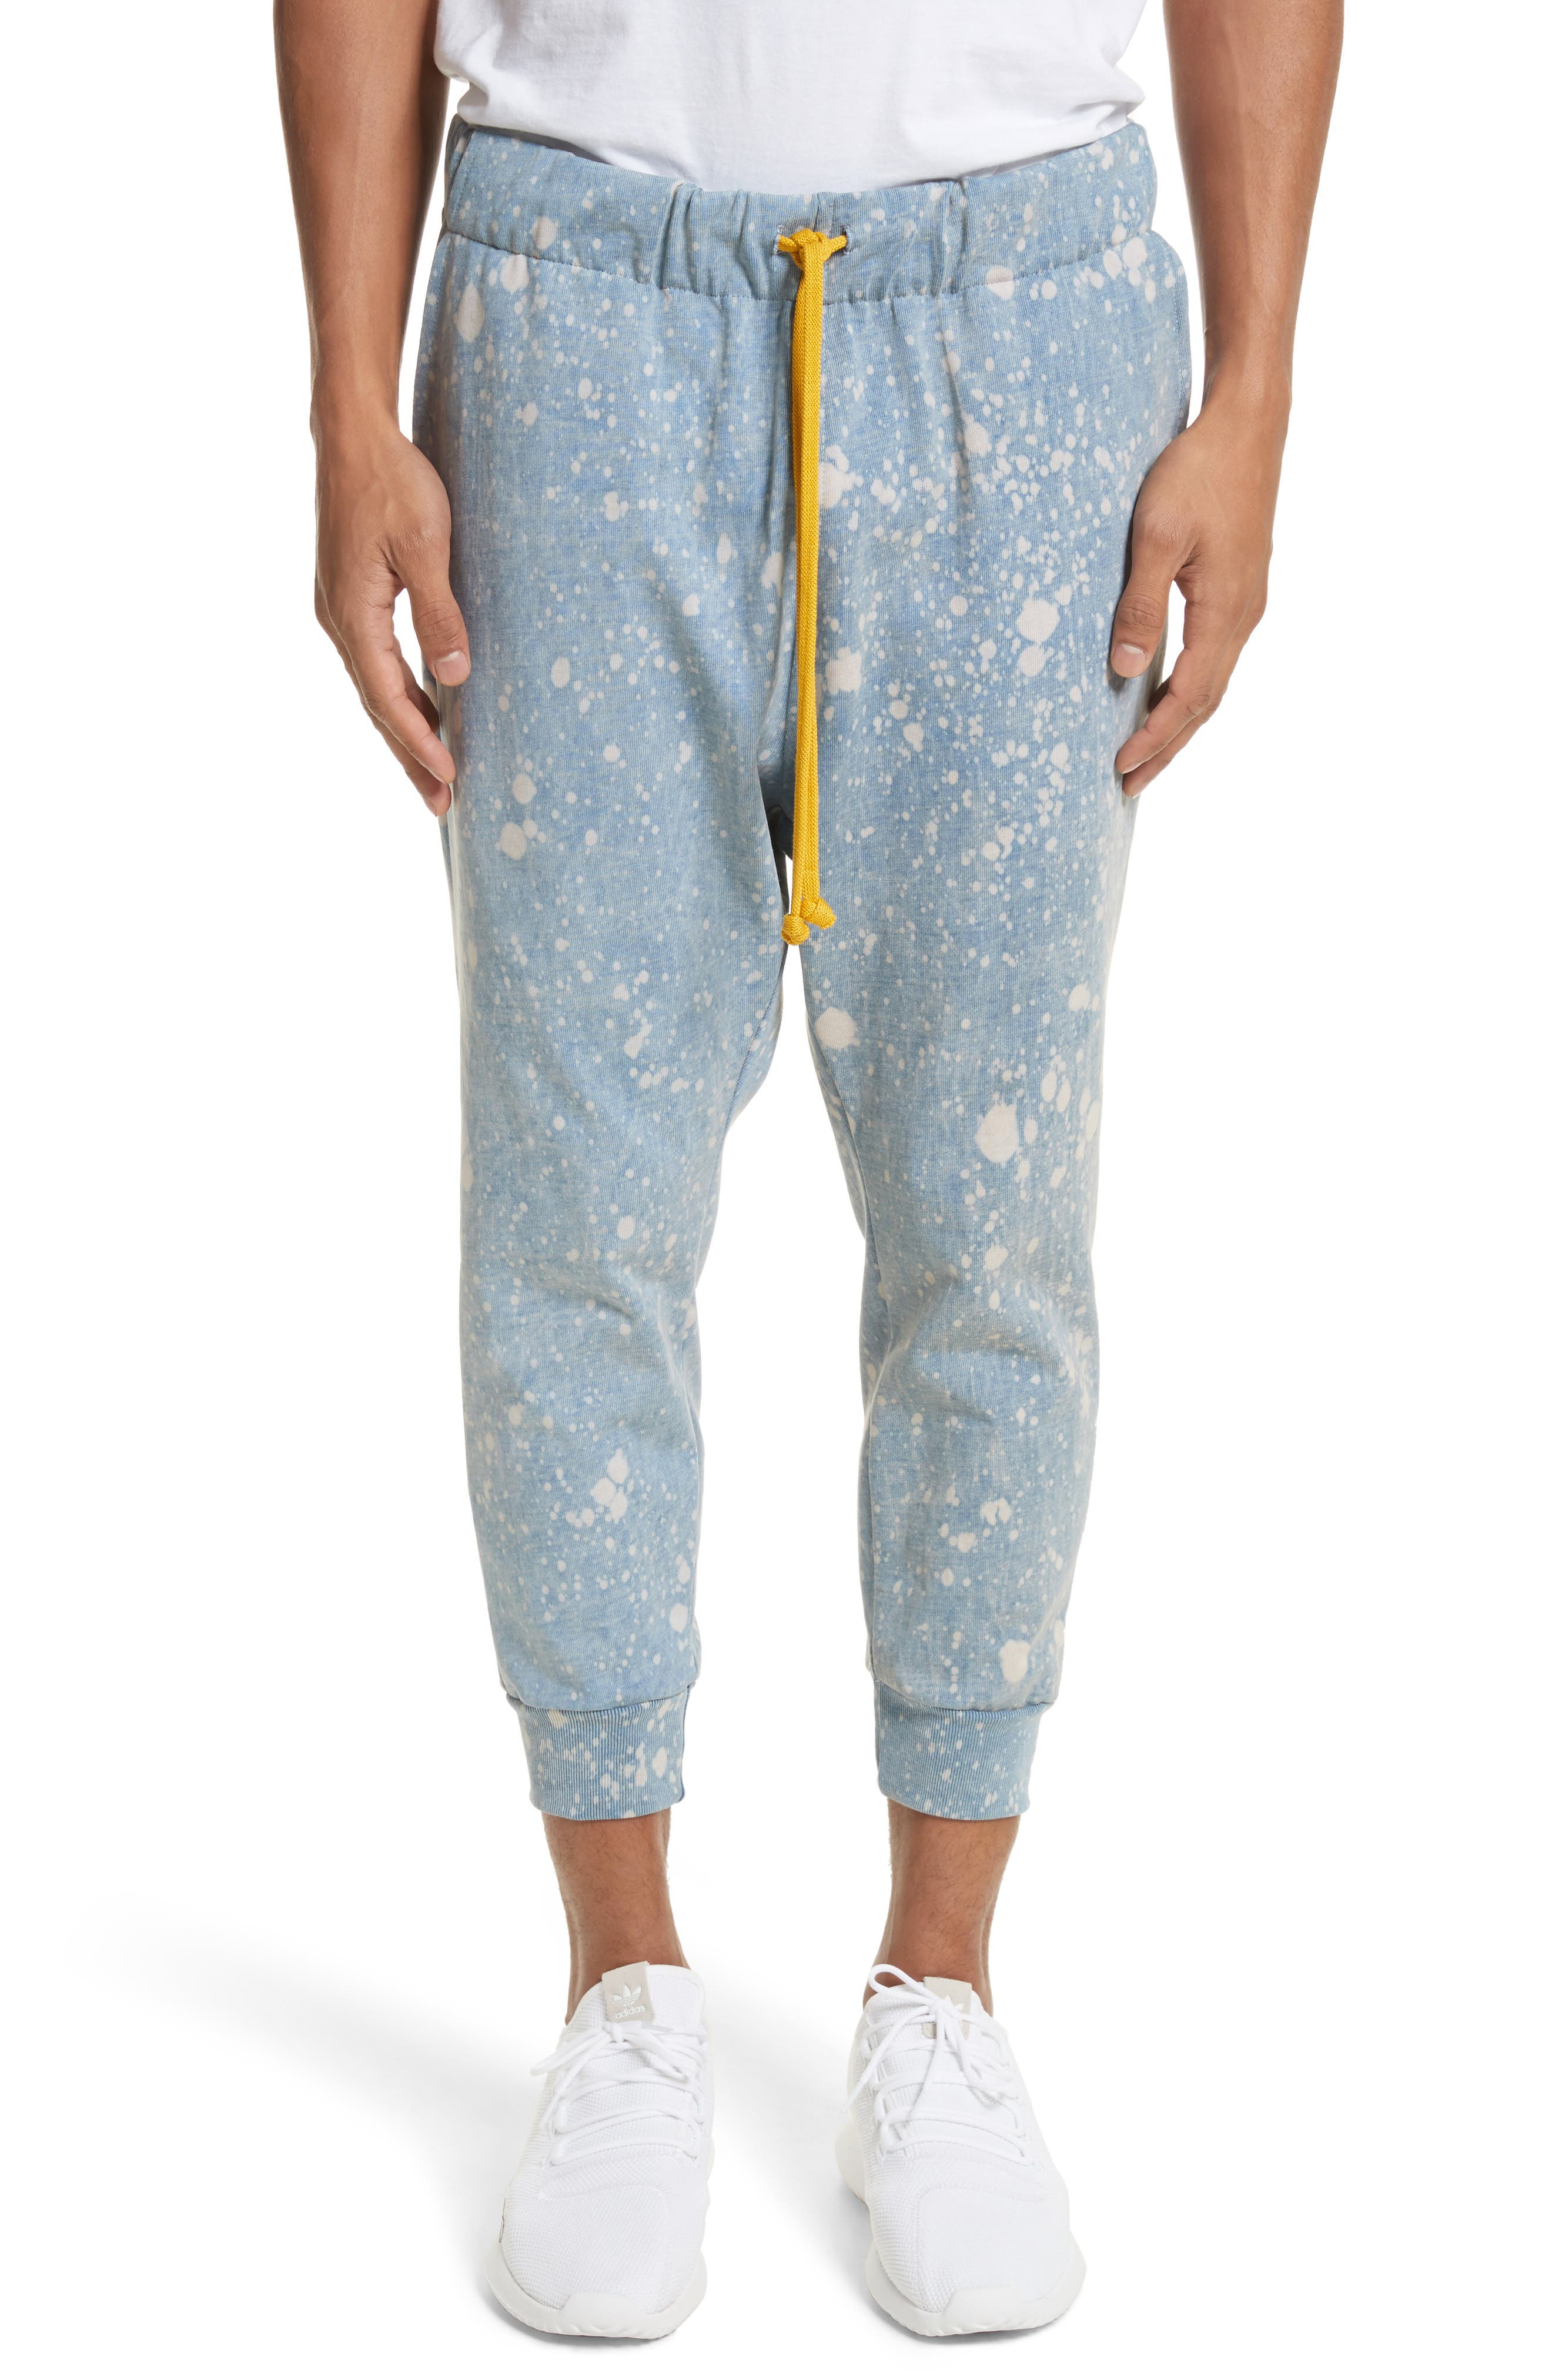 Loki Jogger Pants,                         Main,                         color, Indigo Splash